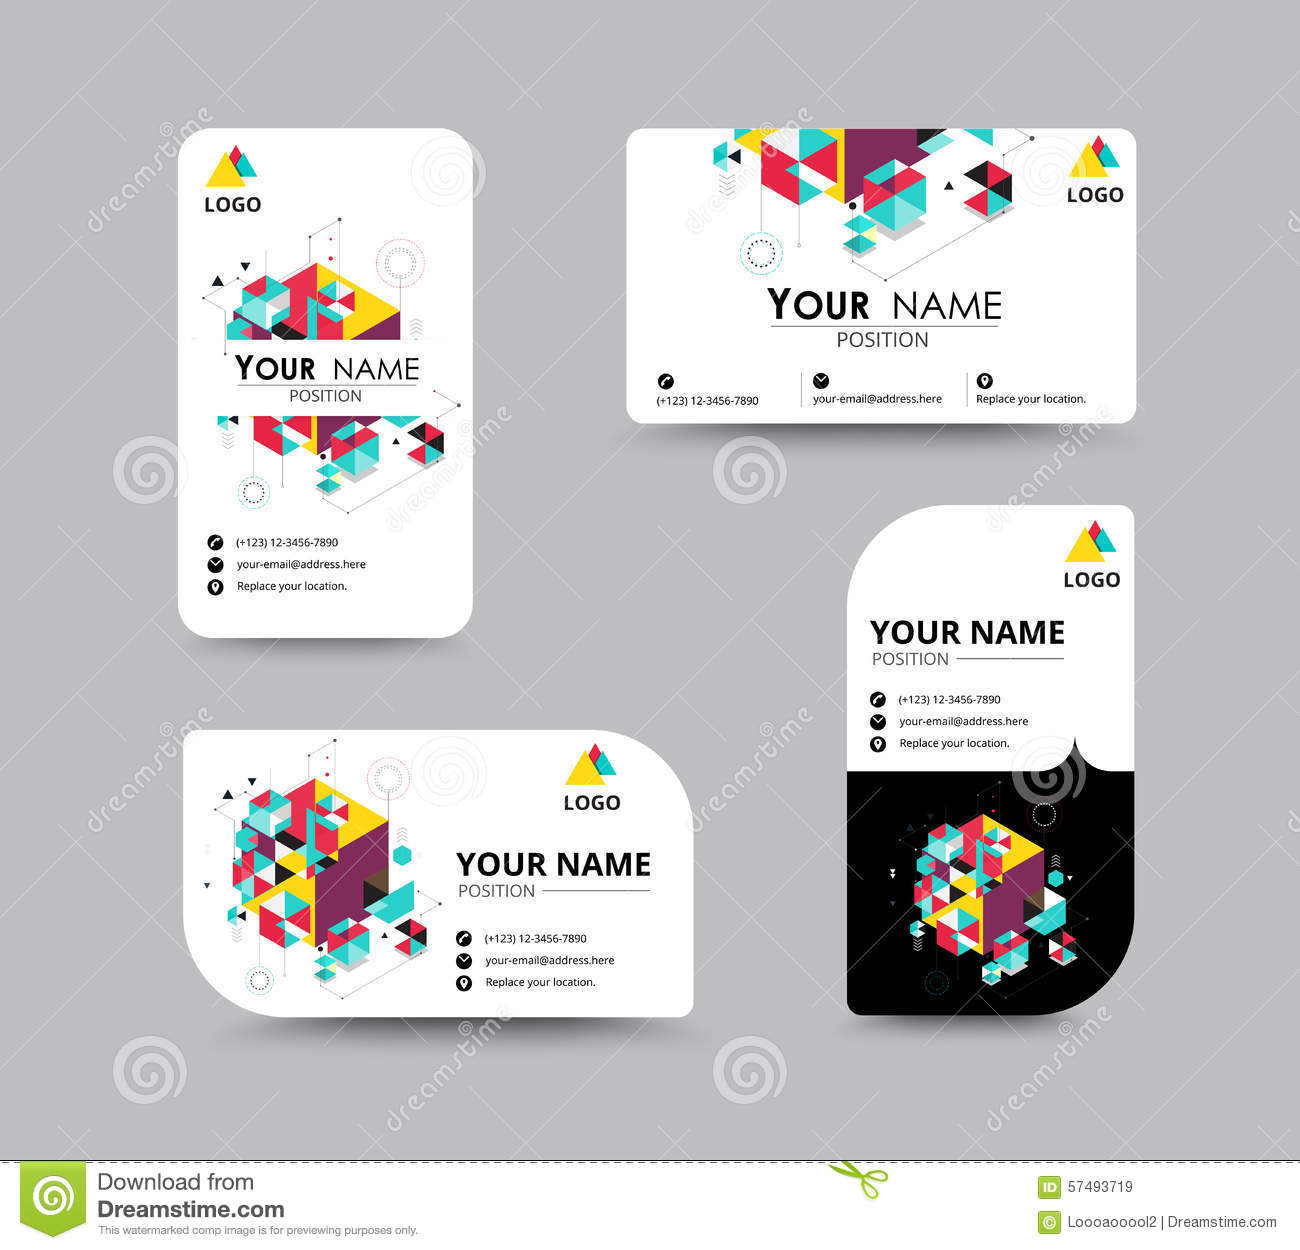 business greeting card template design introduce card include sample text position vector illustration design